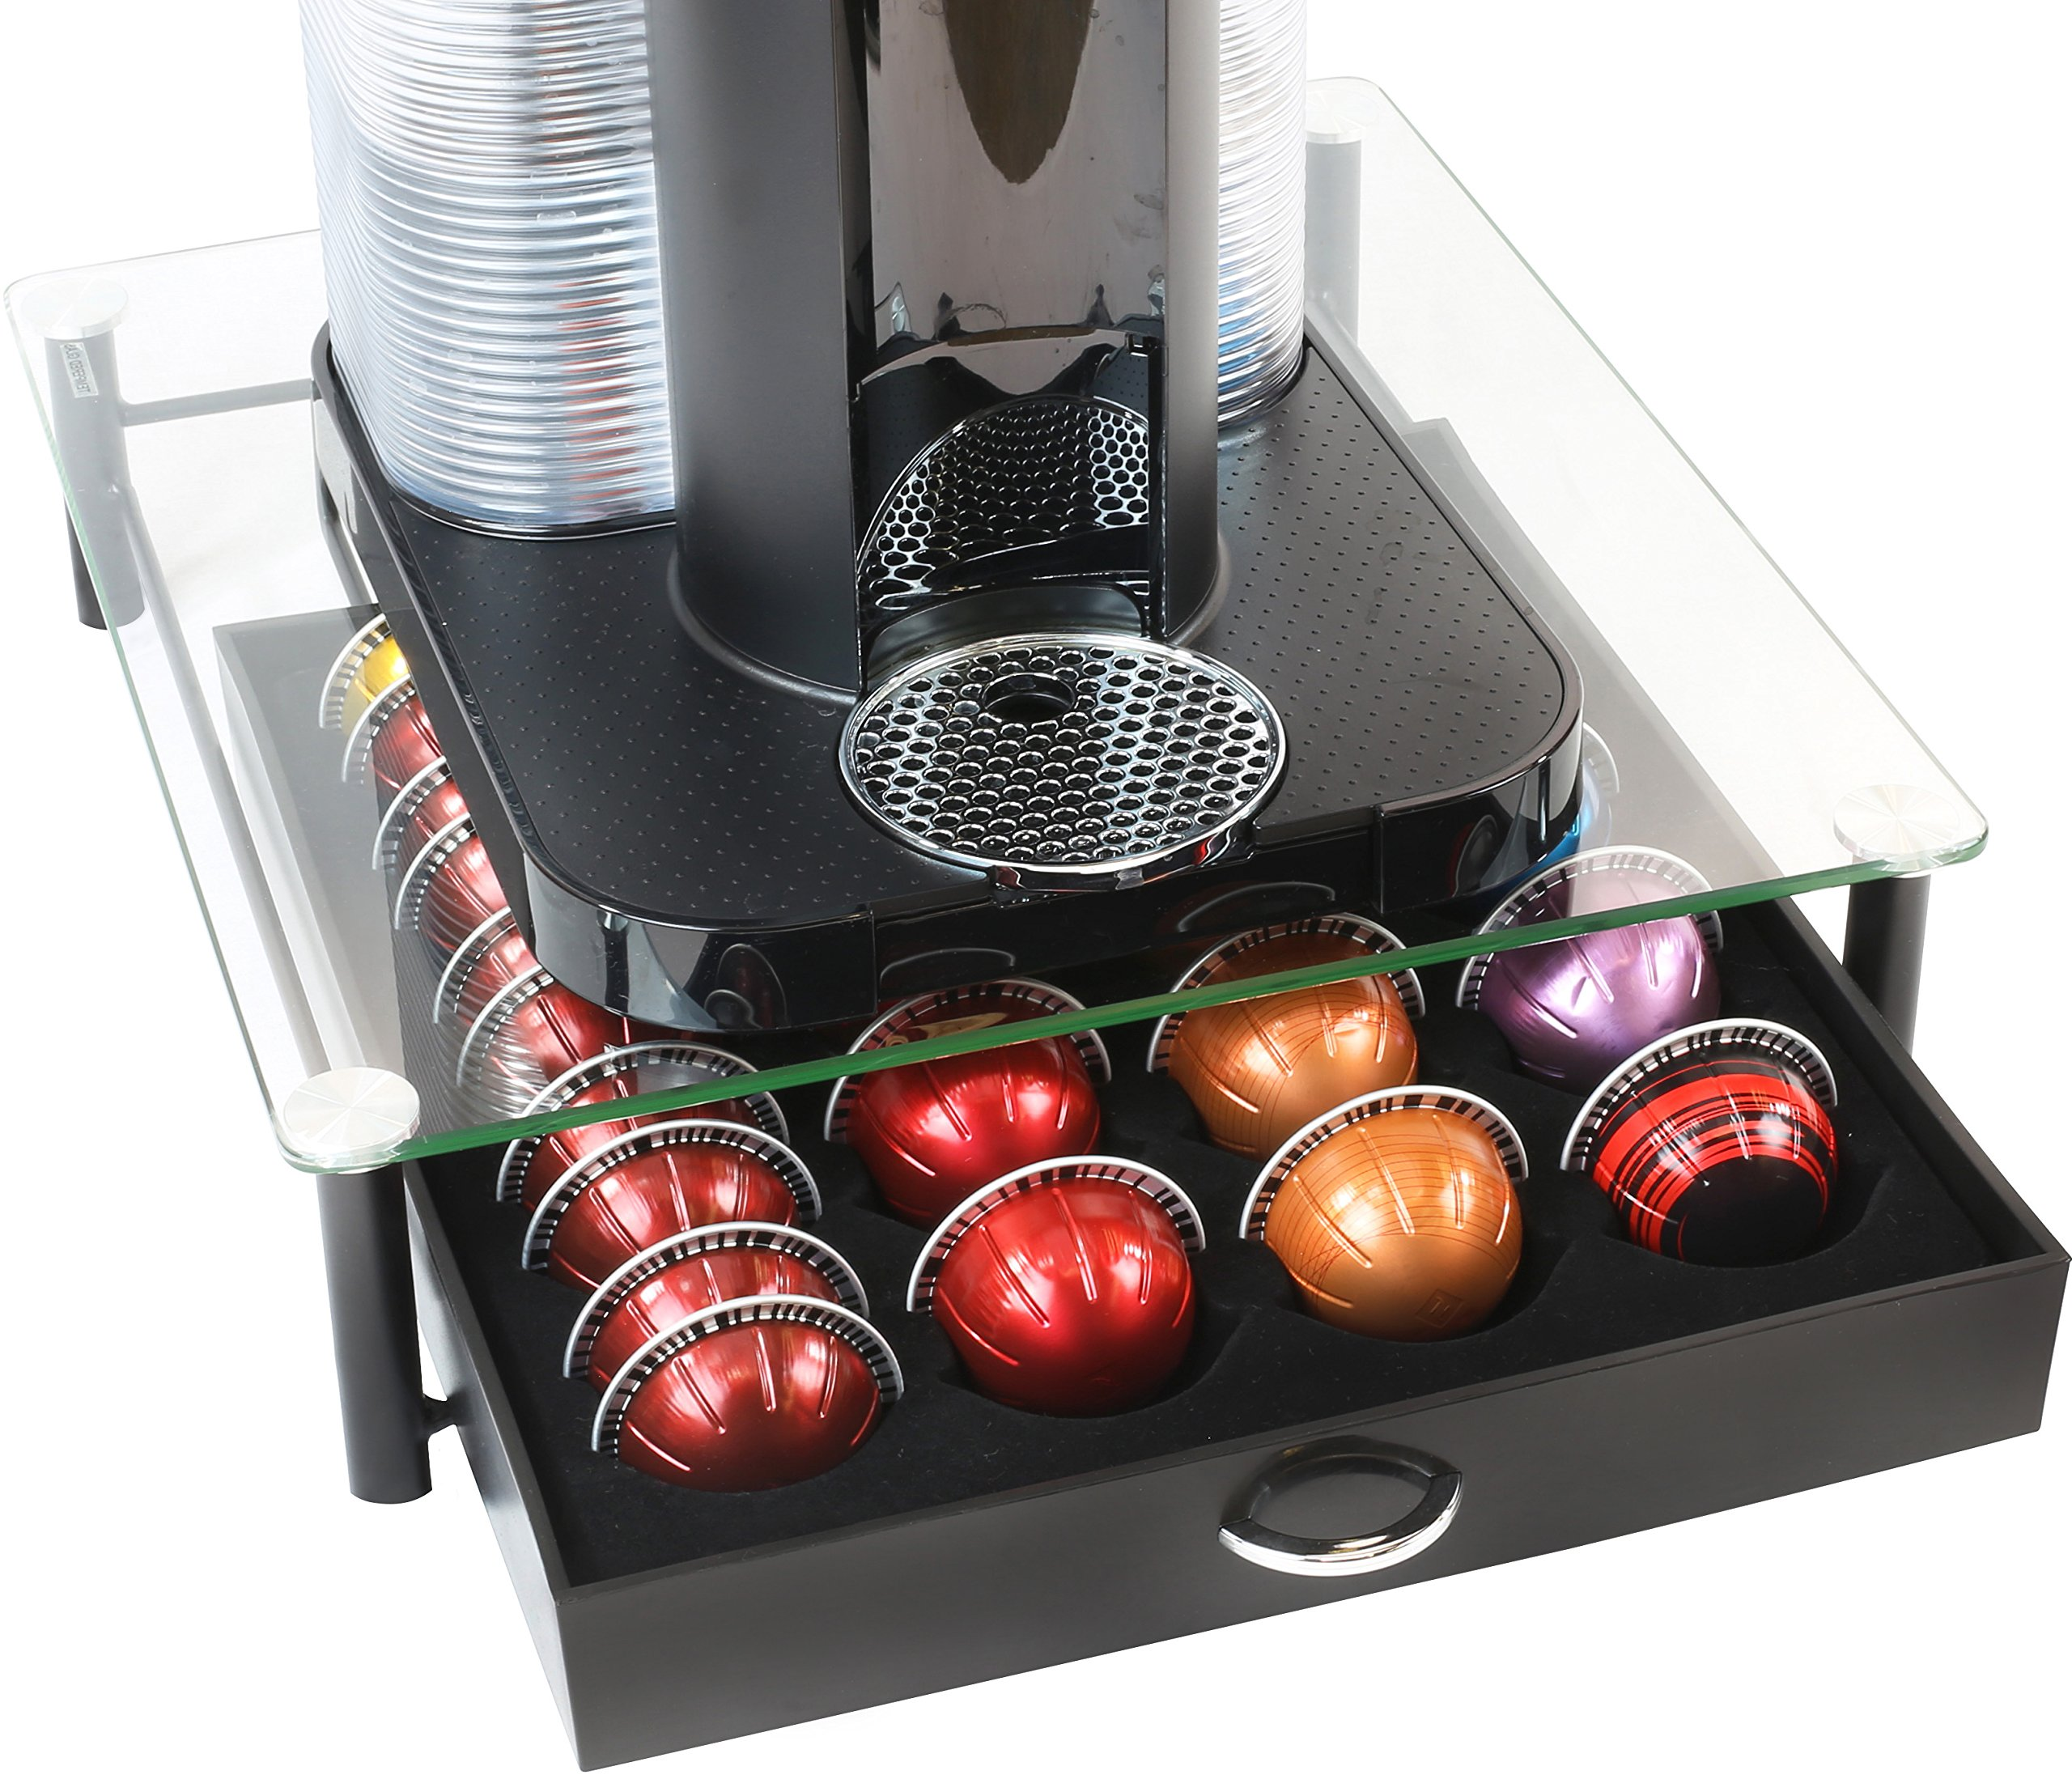 nespresso vertuoline the initial sampler coffee capsules pods one capsule of each coffee. Black Bedroom Furniture Sets. Home Design Ideas